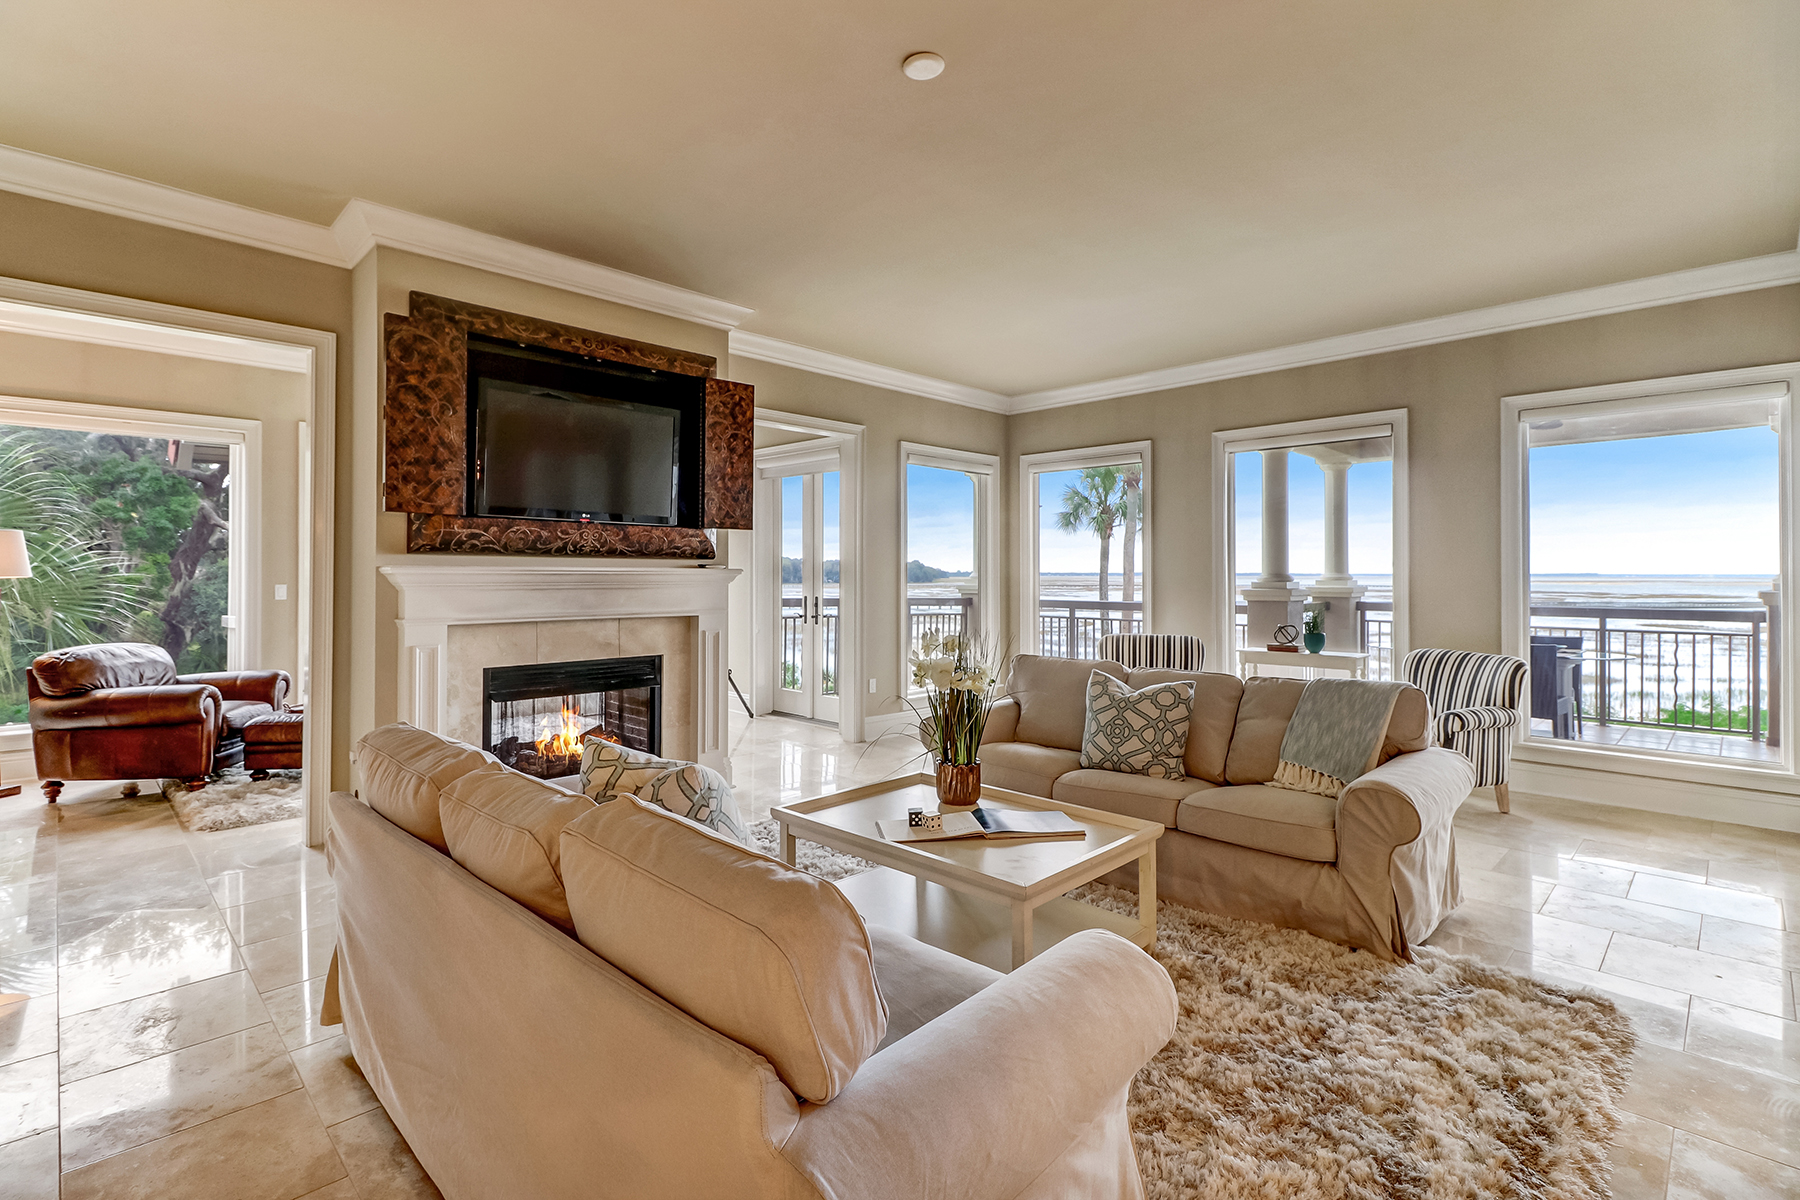 Condominiums for Sale at The Landings on Amelia River 5023 First Coast Highway Unit 201B Amelia Island, Florida 32034 United States